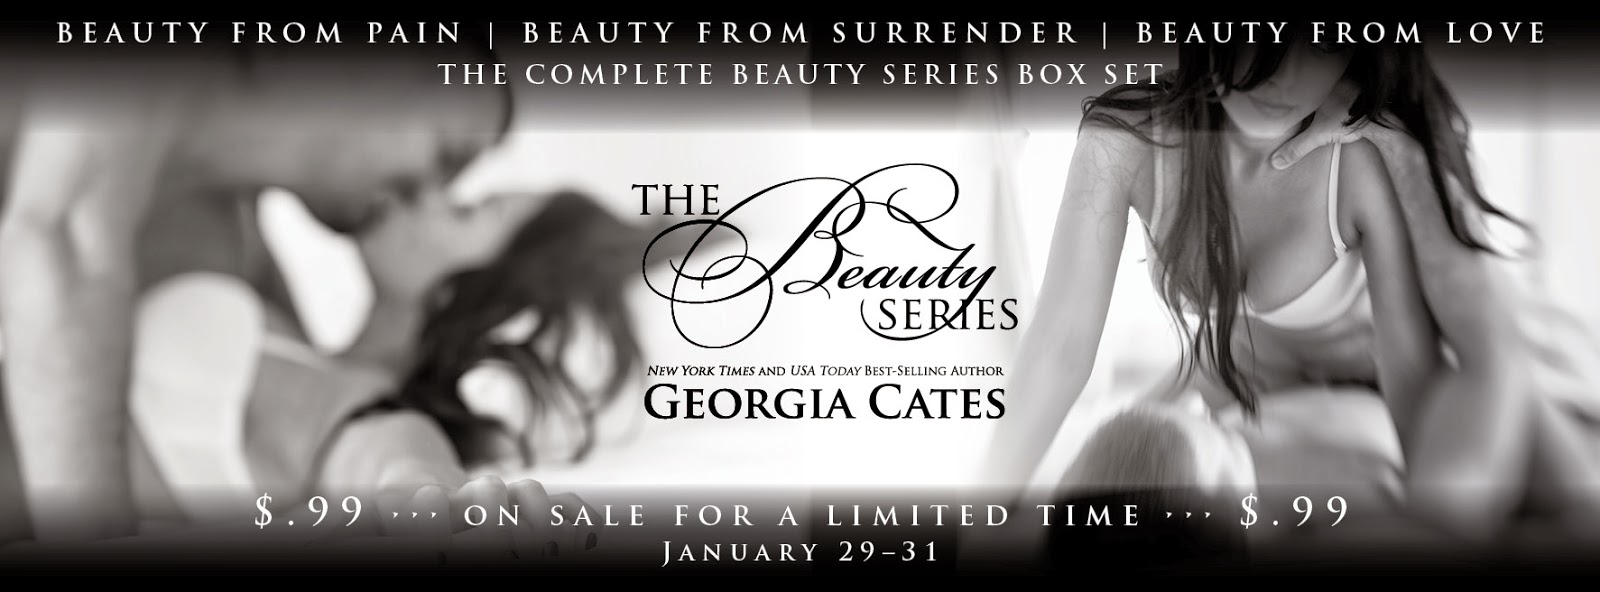 Promo: Beauty Series Bundle by Georgia Cates